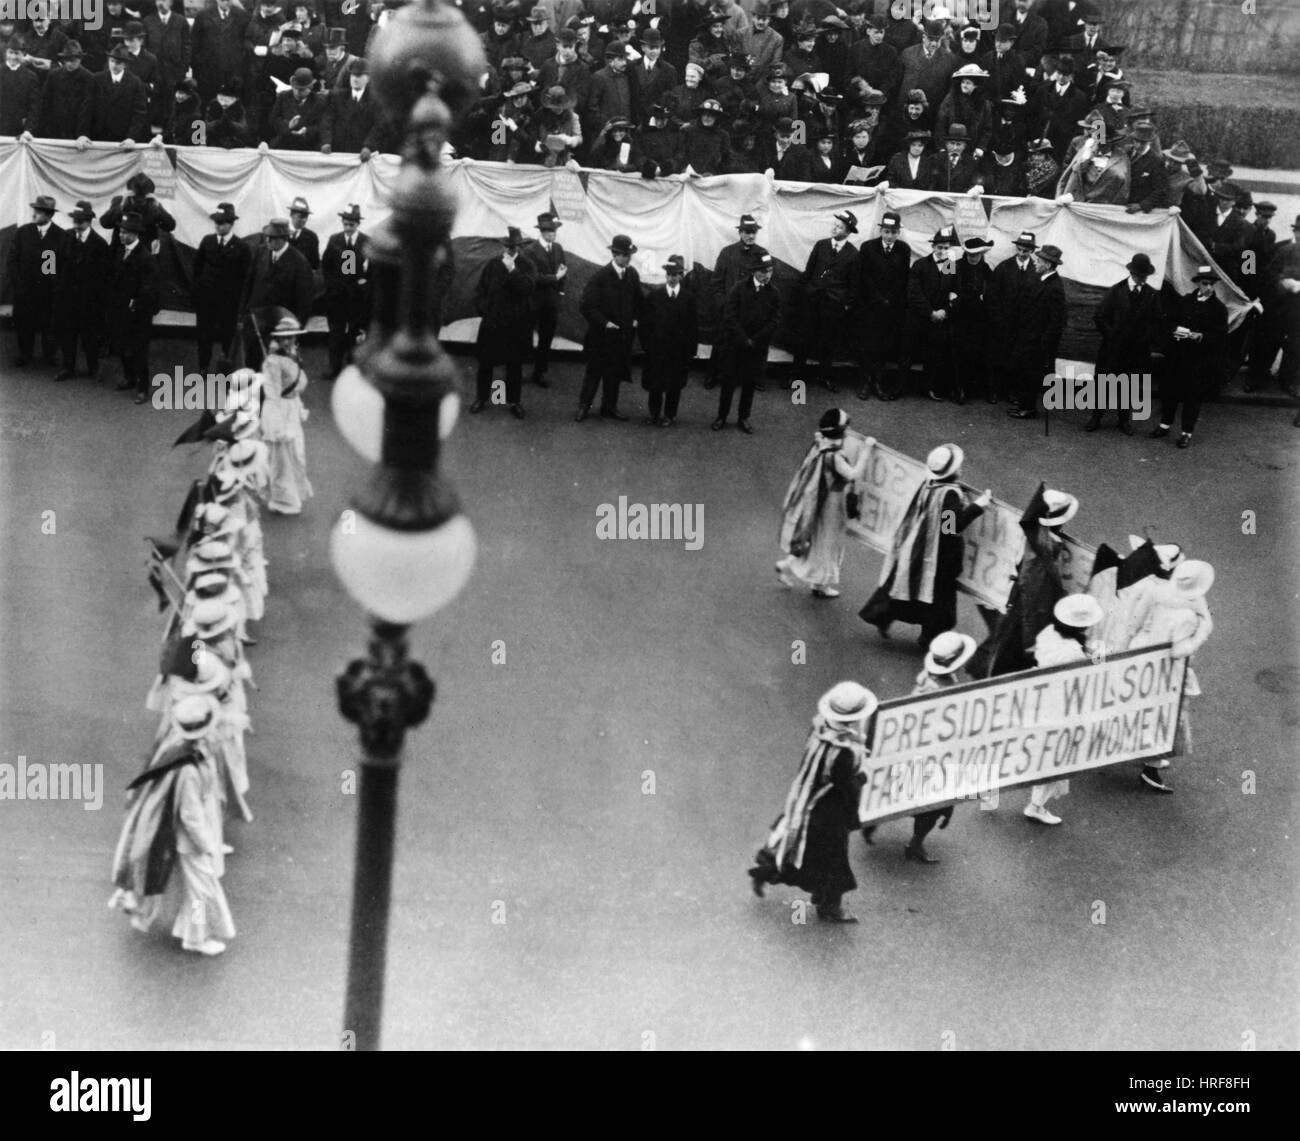 Suffragists NYC, 1916 - Stock Image